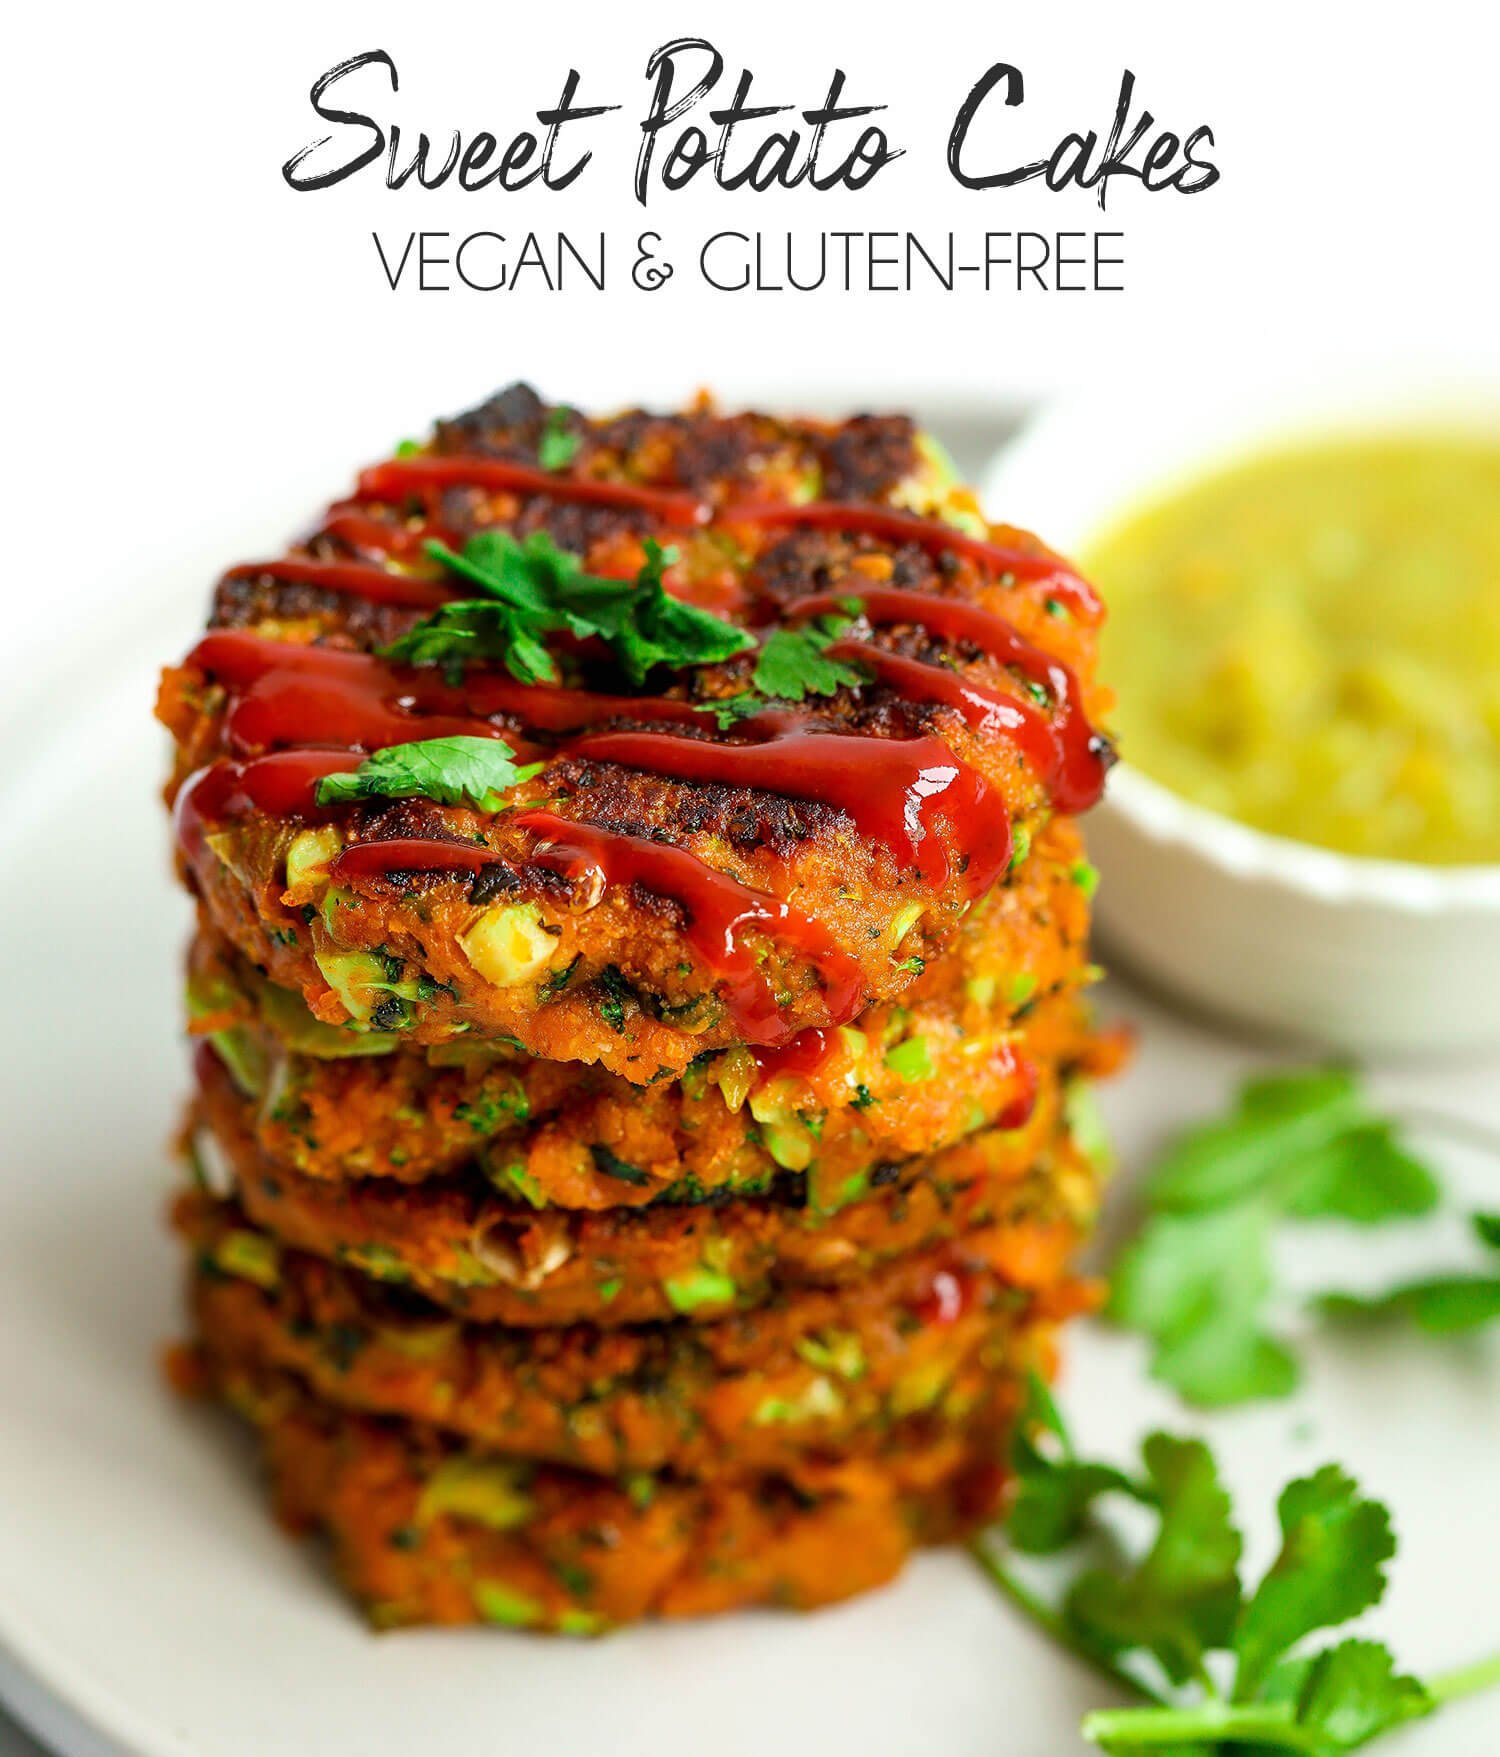 Vegan Sweet Potato Cakes